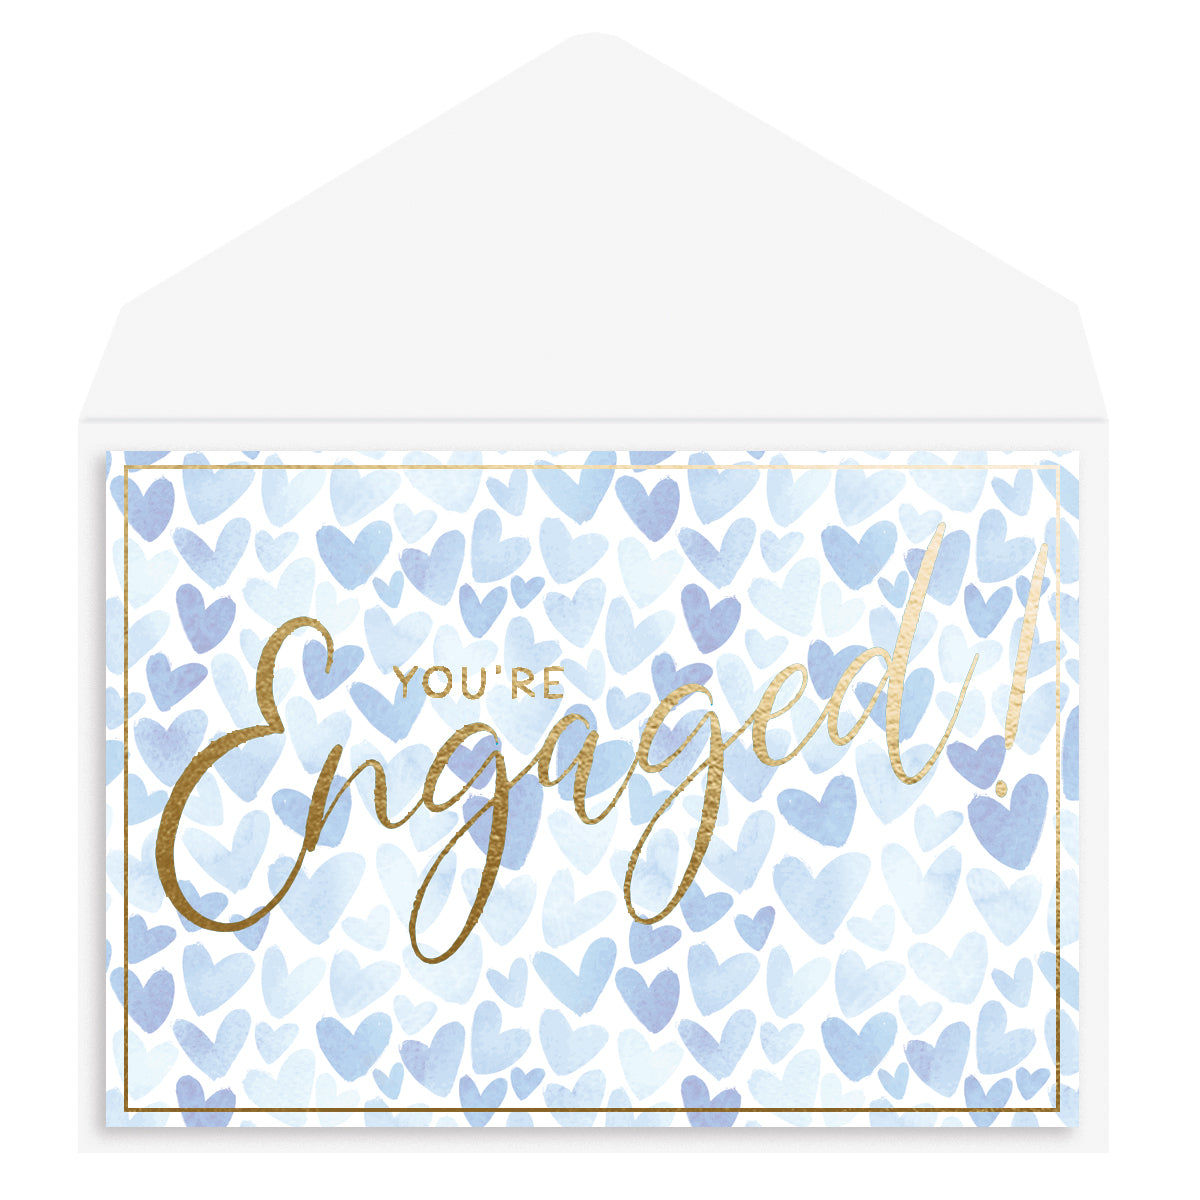 Engaged hearts Engagement Card